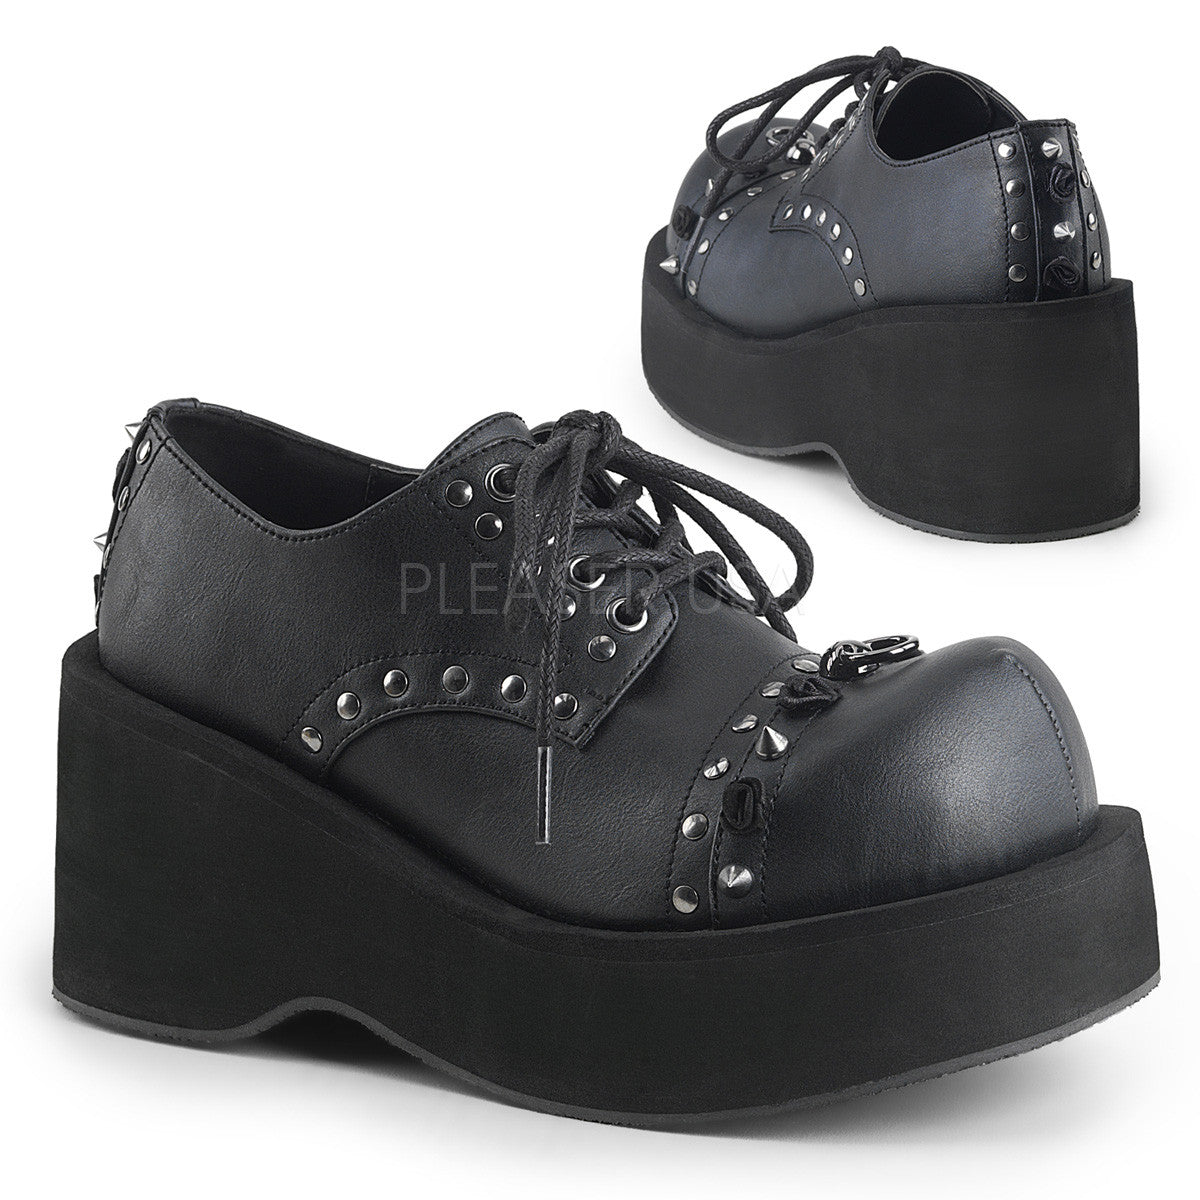 "3"" Platform Lace-Up Oxford Shoe"